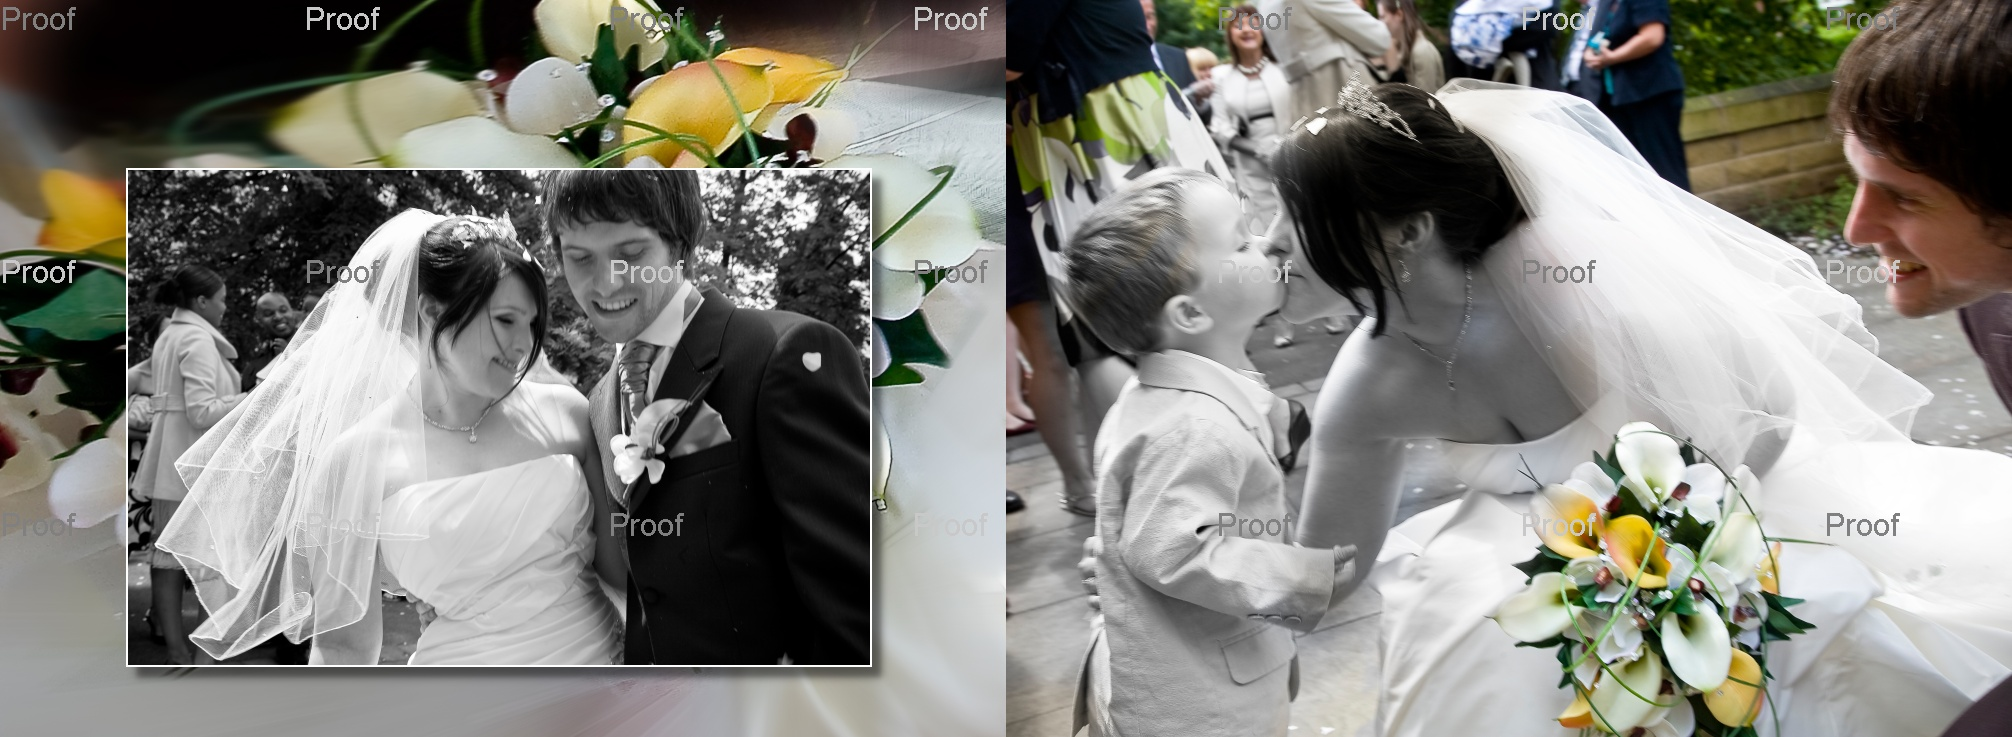 pages 24-25 of wedding storybook album with natural pictures of  bride and groom outside church after wedding